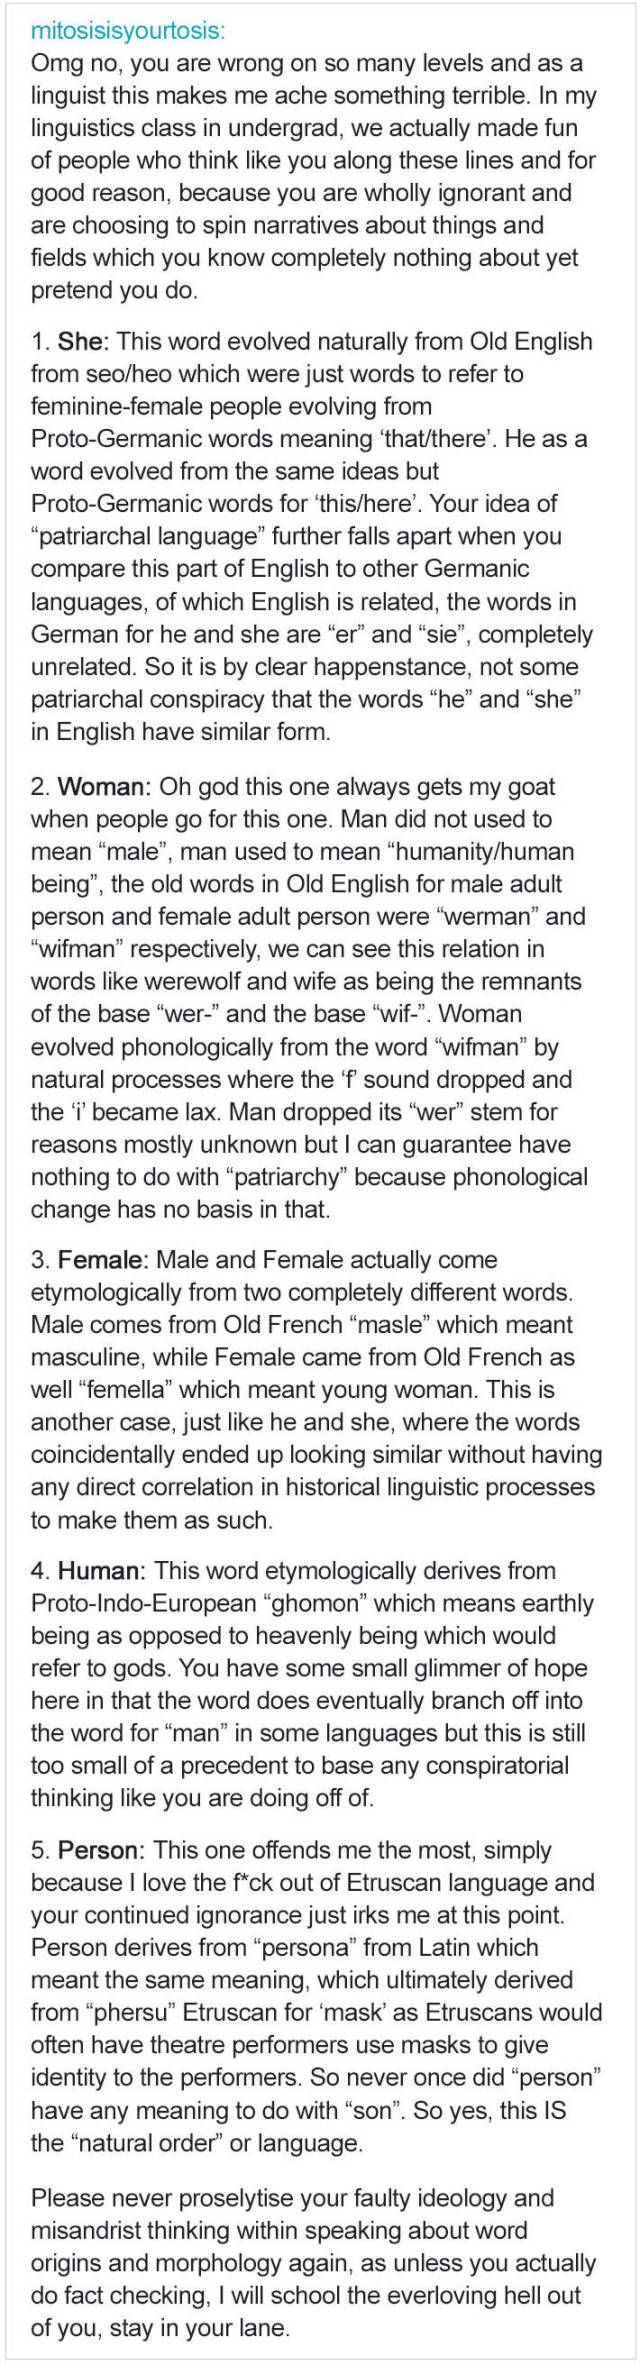 Woman Tried To Attack English Language For Being Sexist, Got Schooled By A Real Linguist (2 pics)